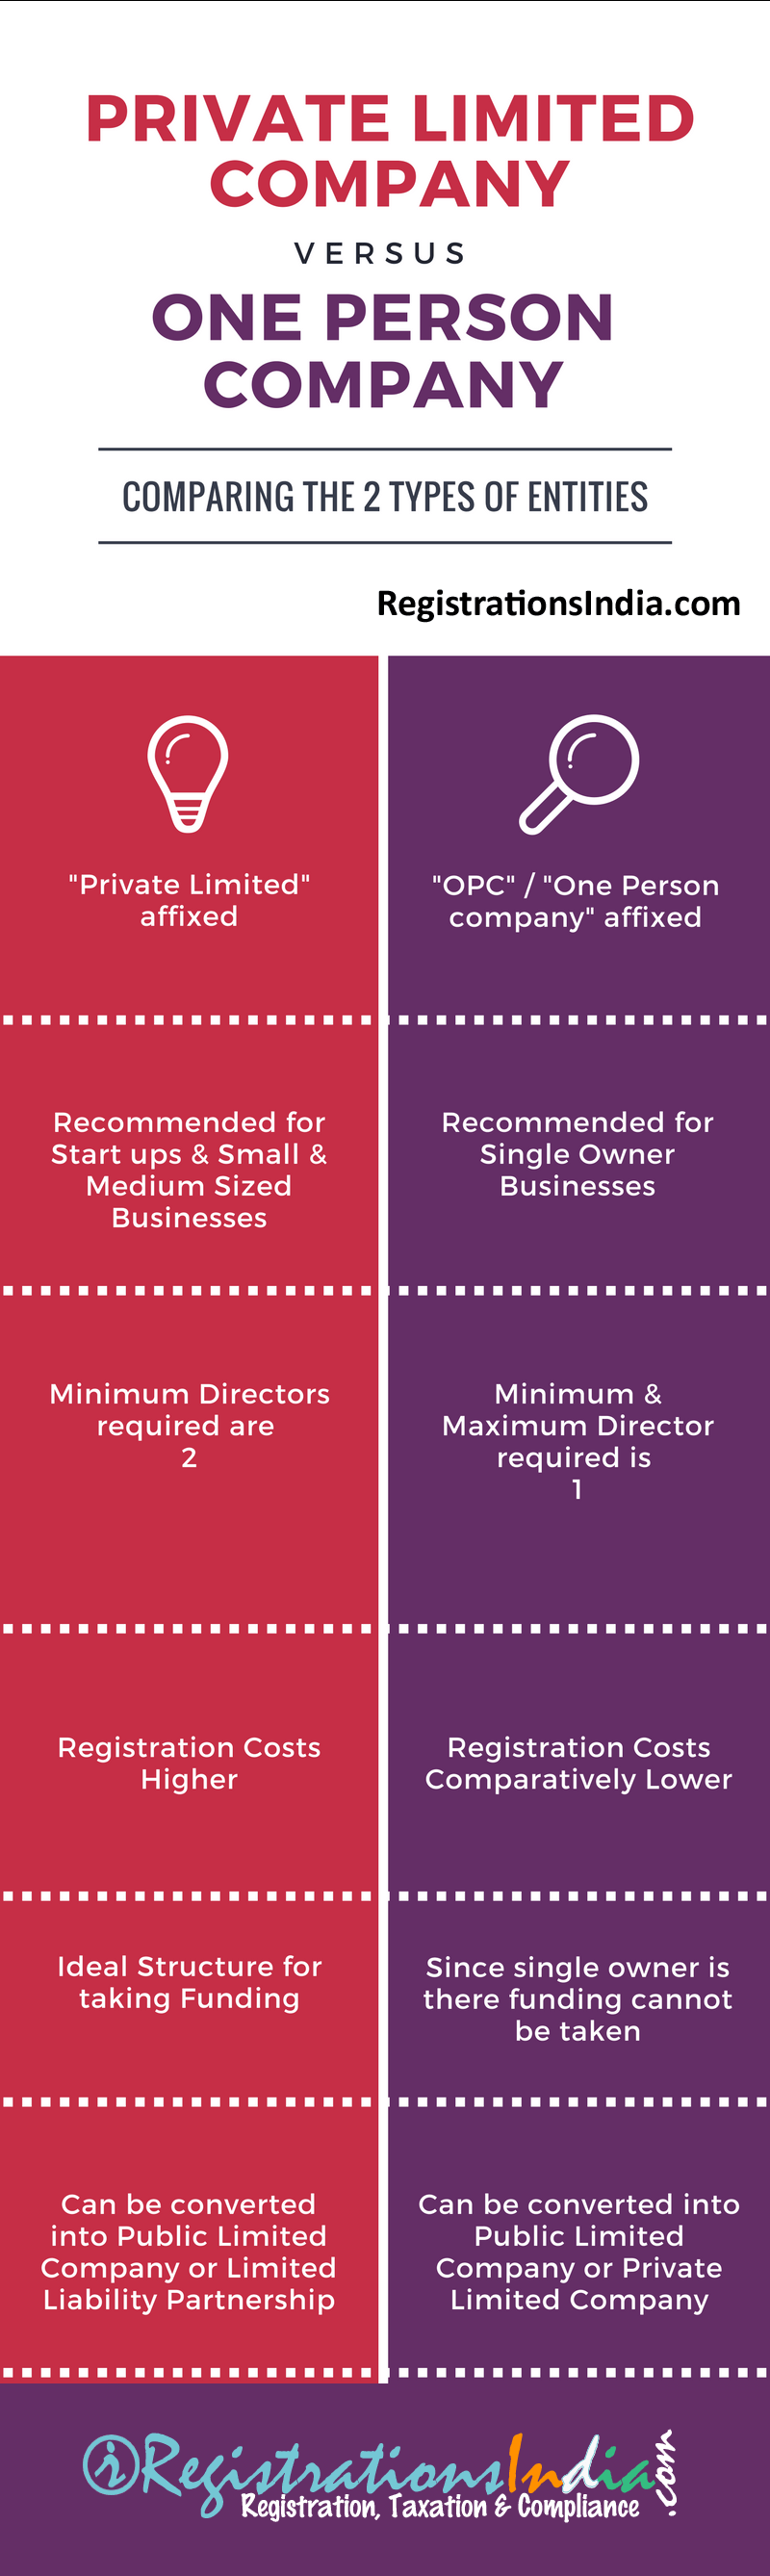 Differences between Private Limited Company and One Person Company infographic